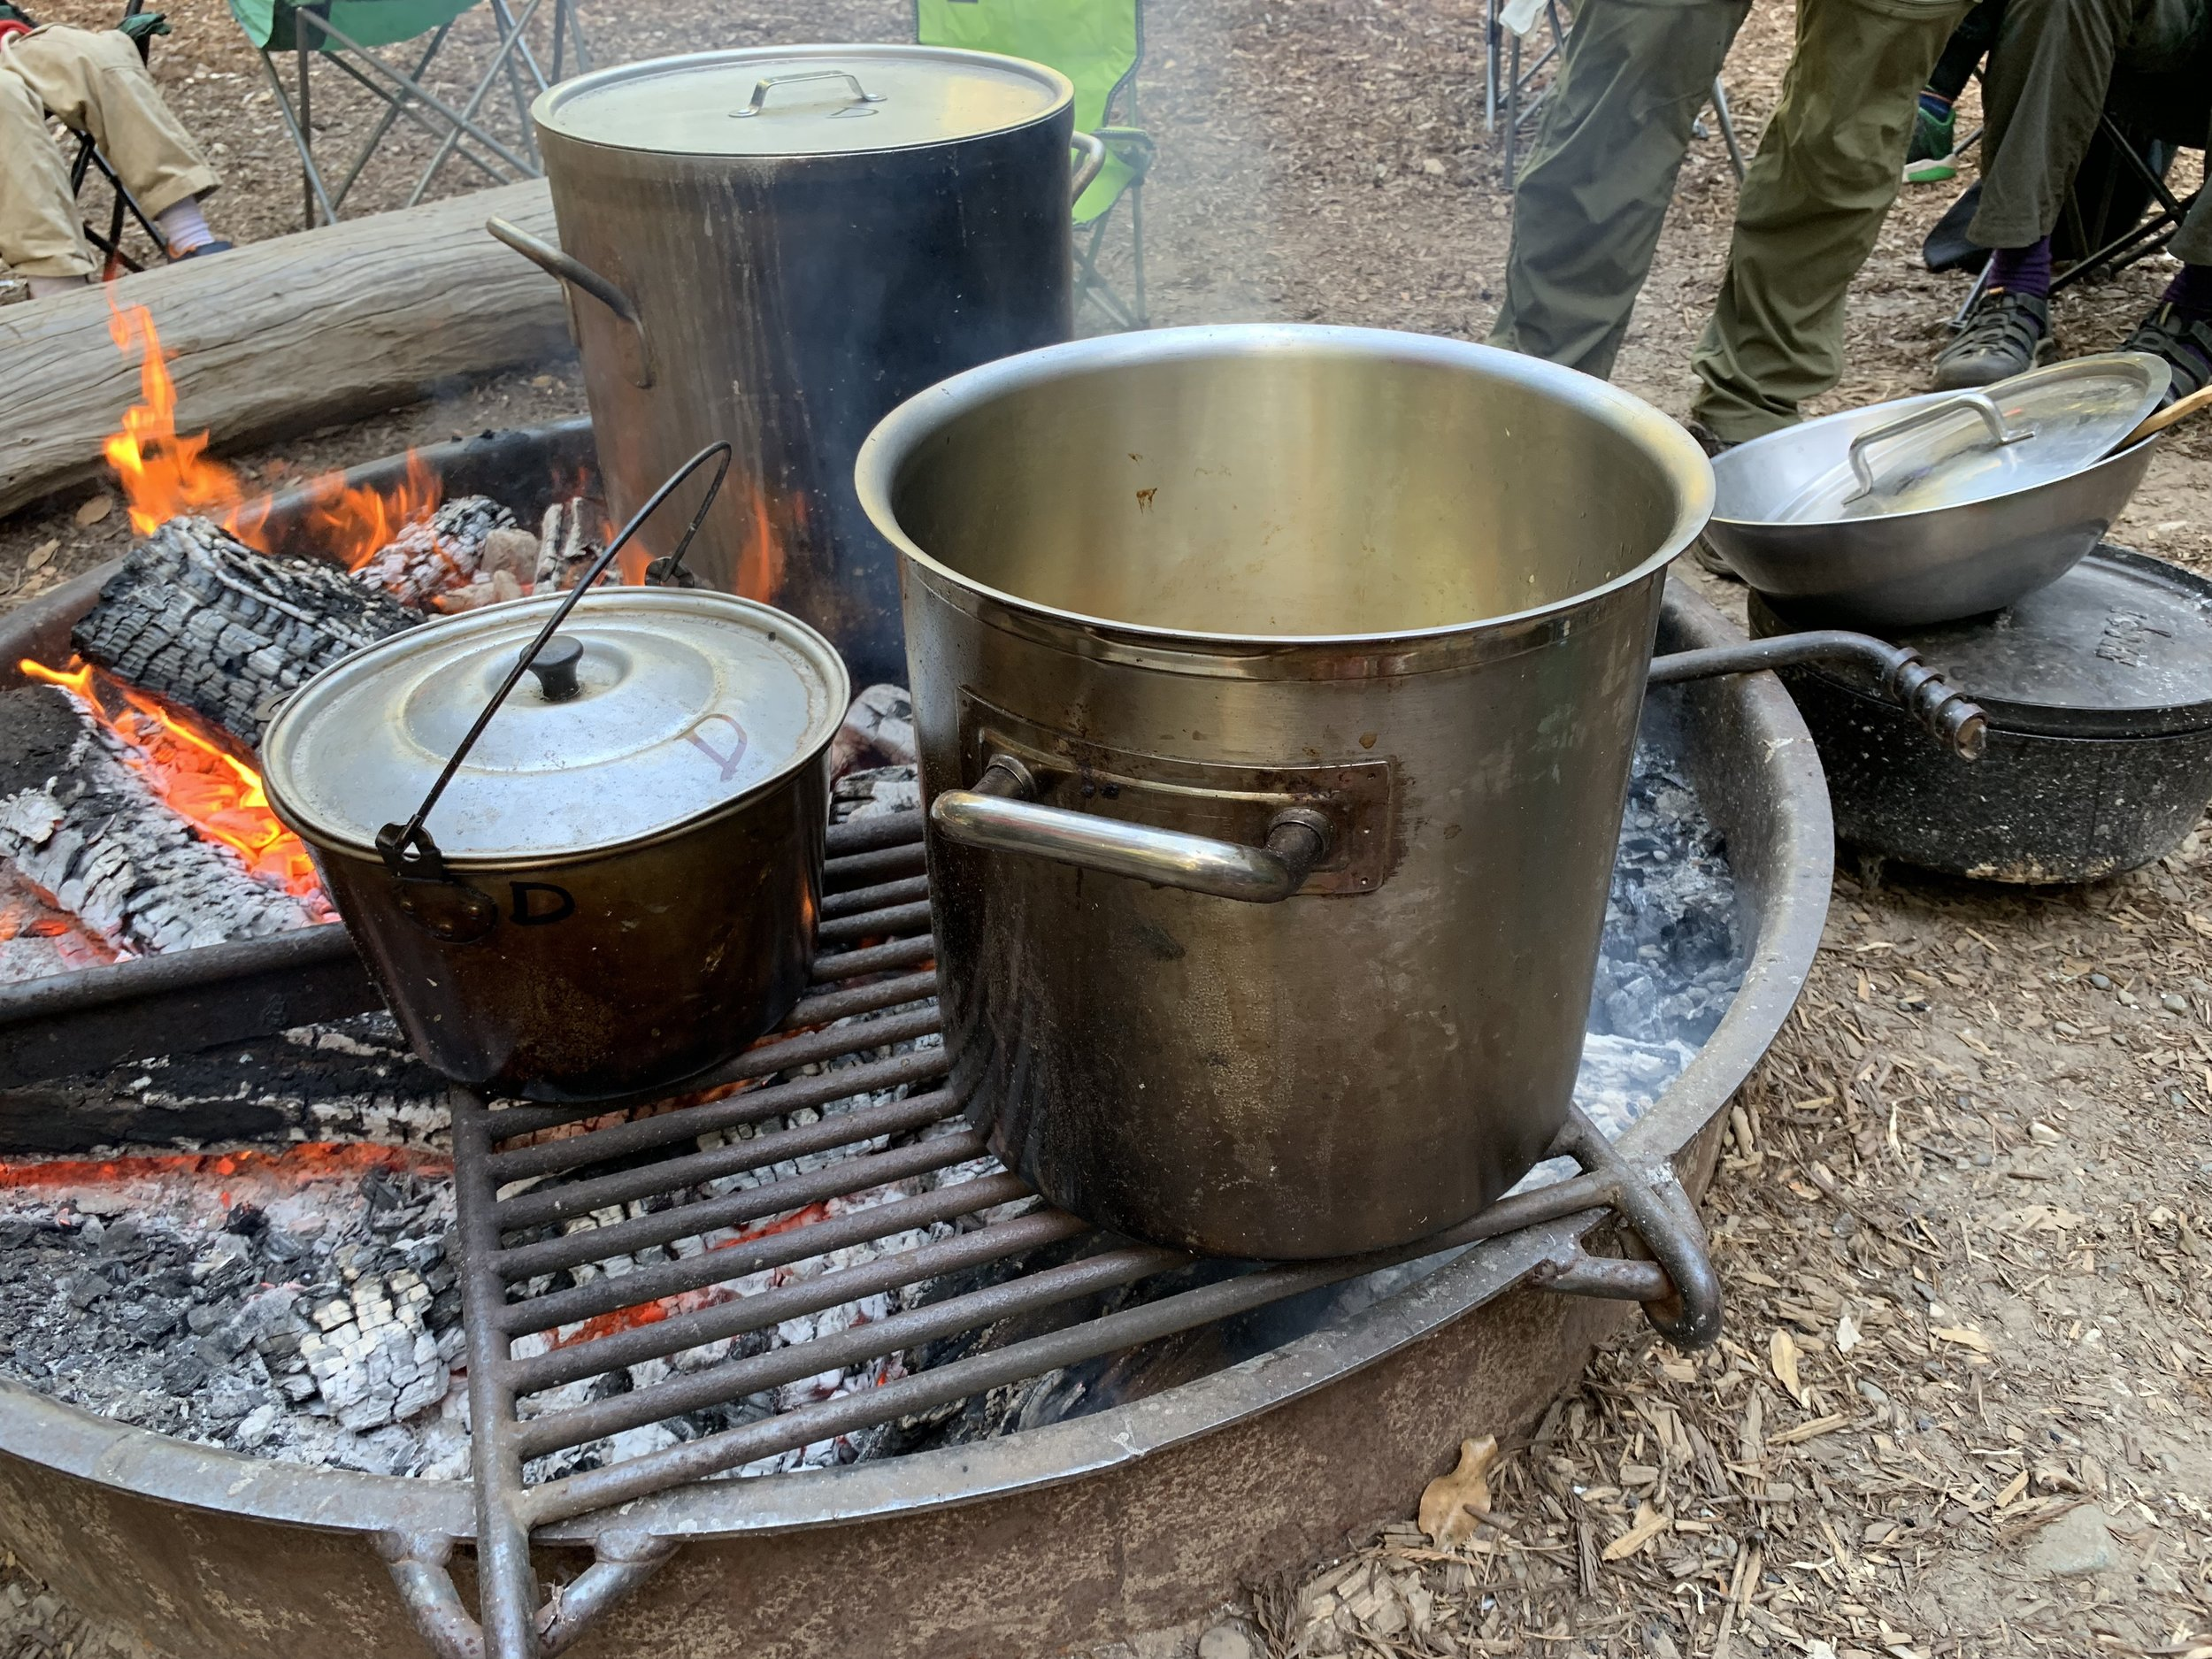 The crisp is in the dutch oven on the right waiting for it's turn on the fire.